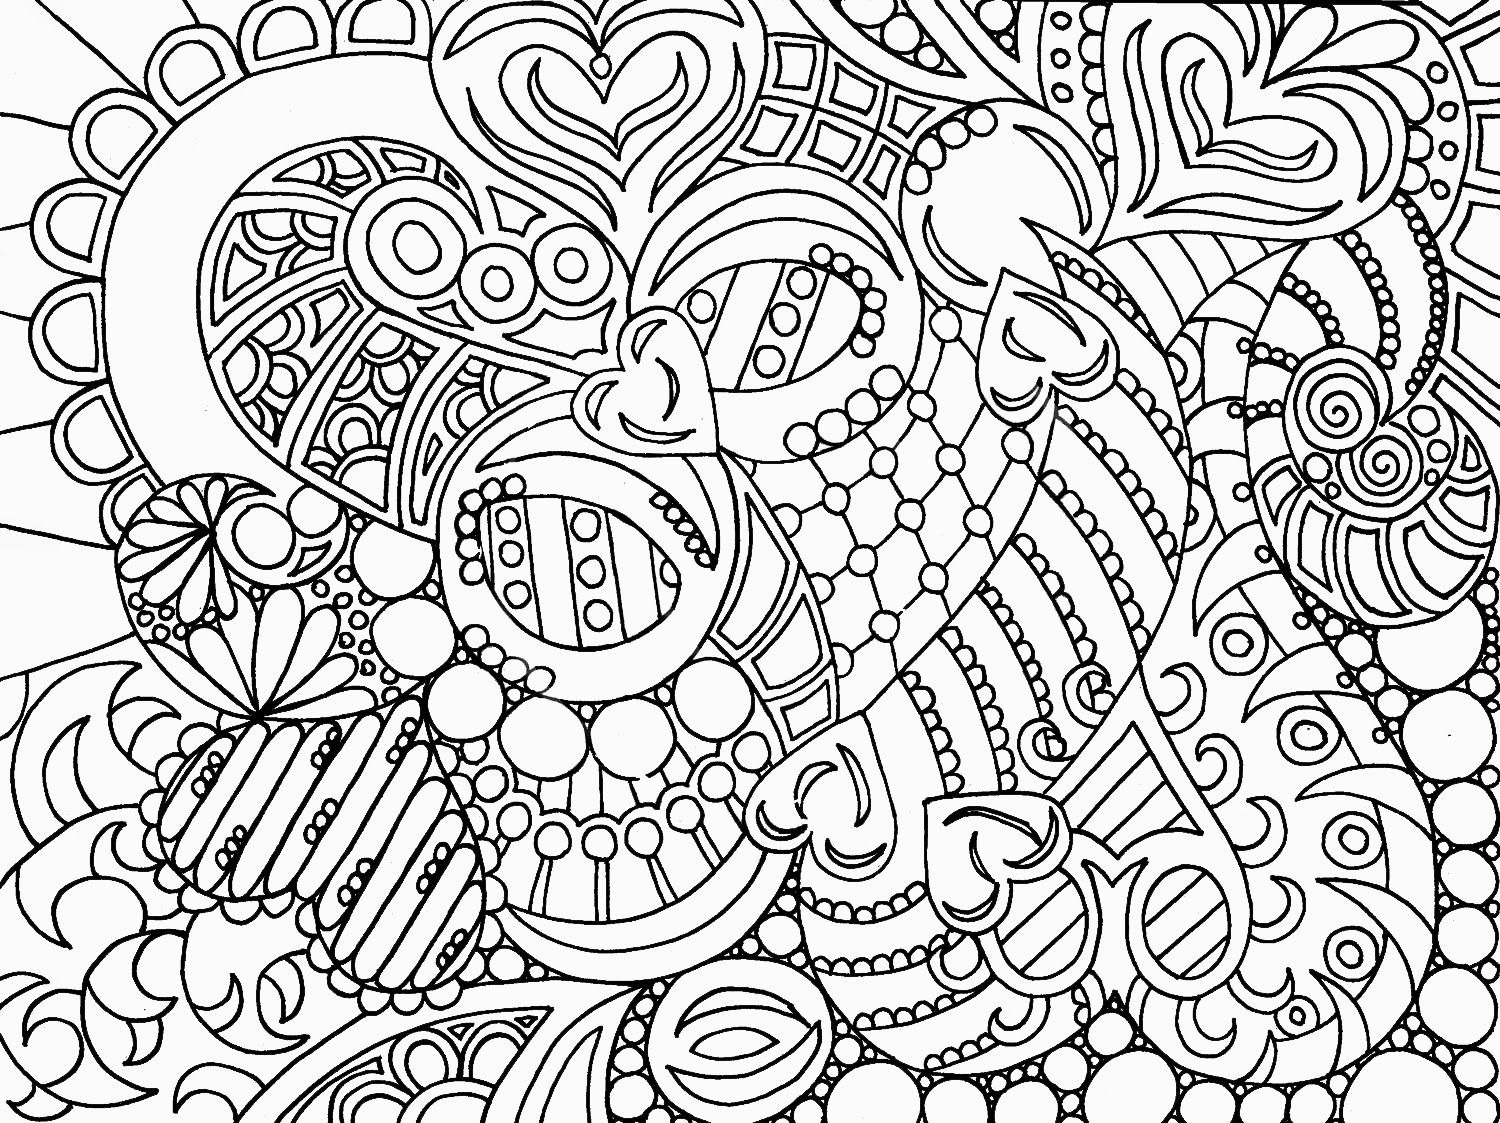 Coloring pages for adults abstract - Abstract Coloring Pages You Can Get Abstract Art Coloring Pages For Adult Here